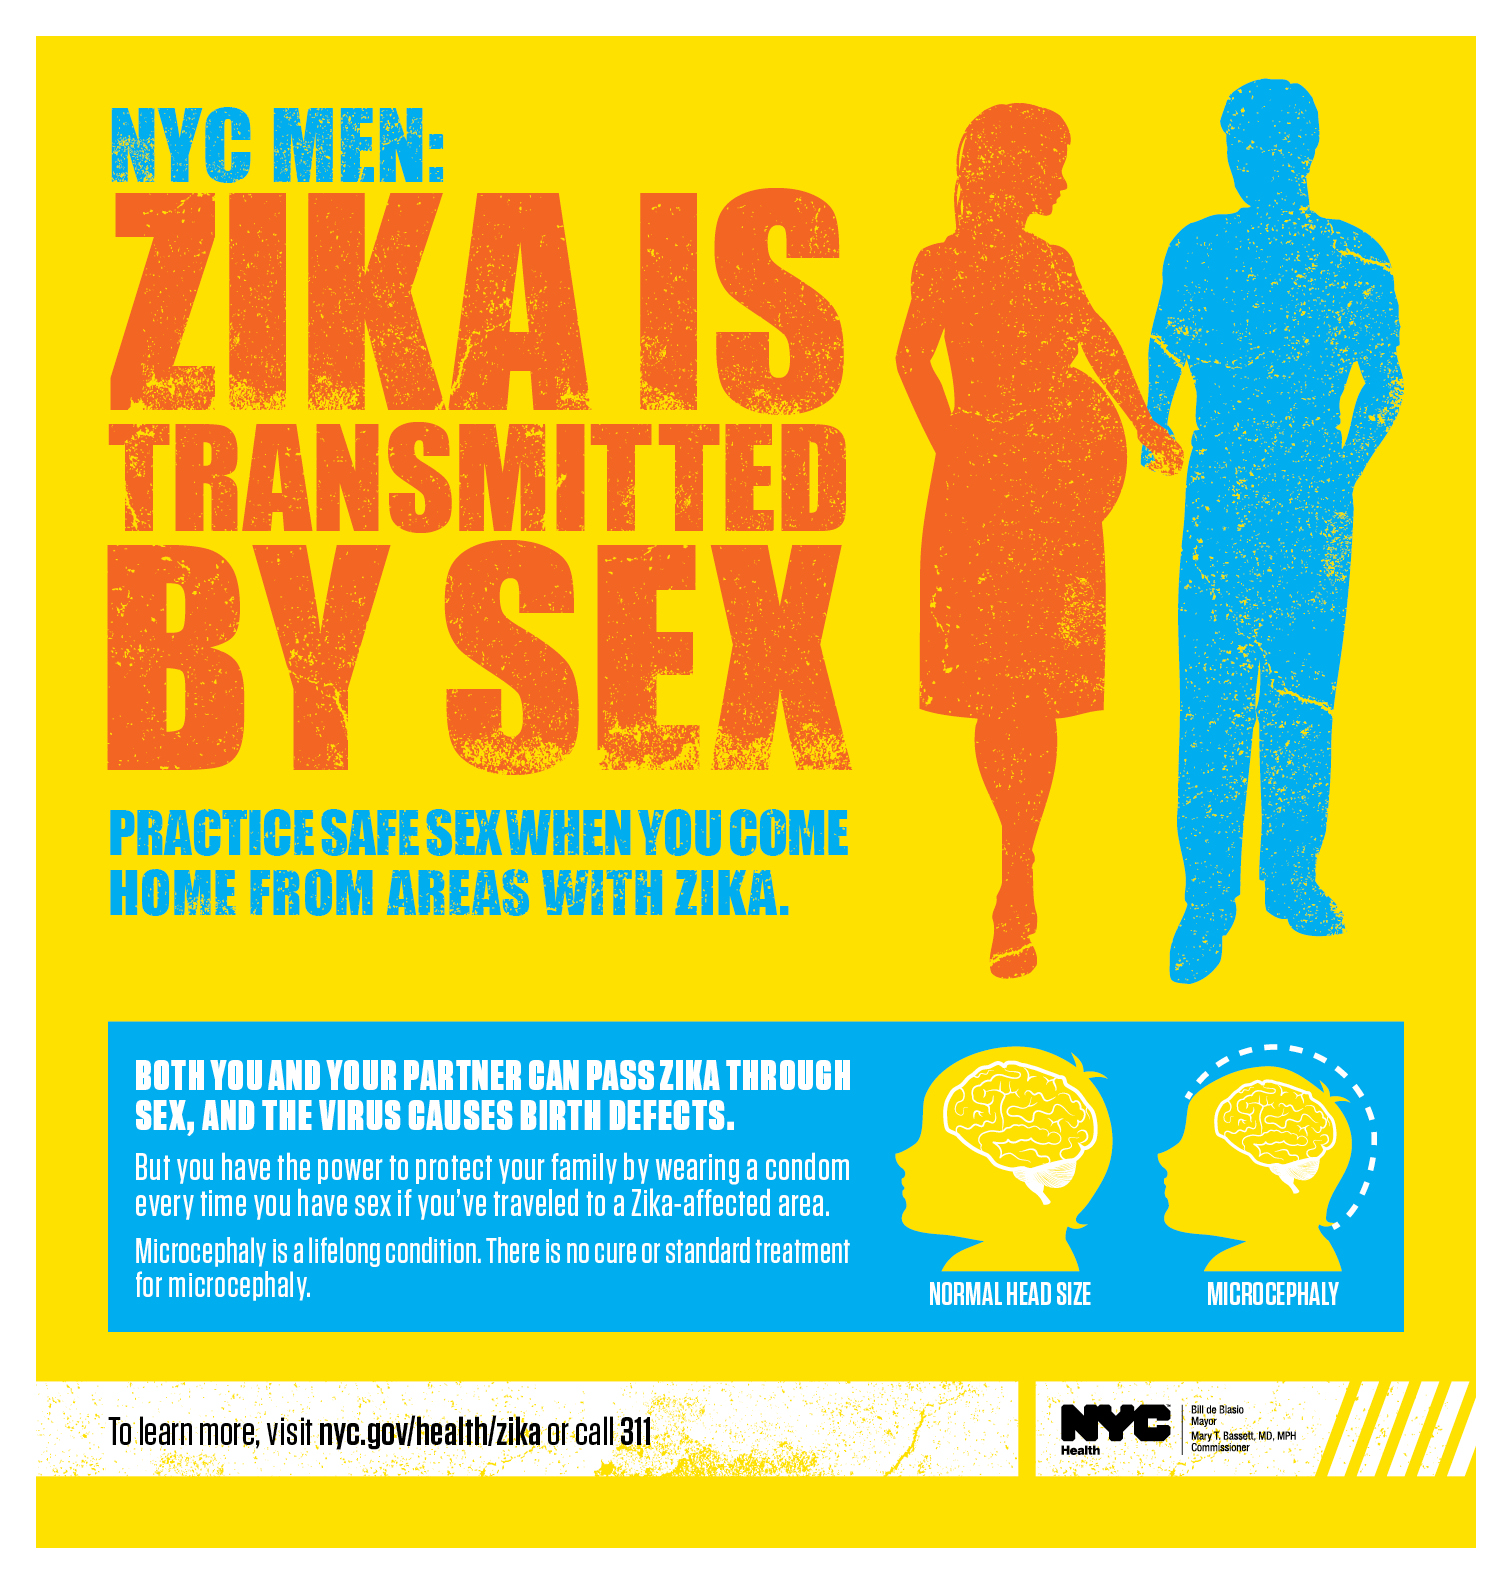 zika-virus-safe-sex-campaign